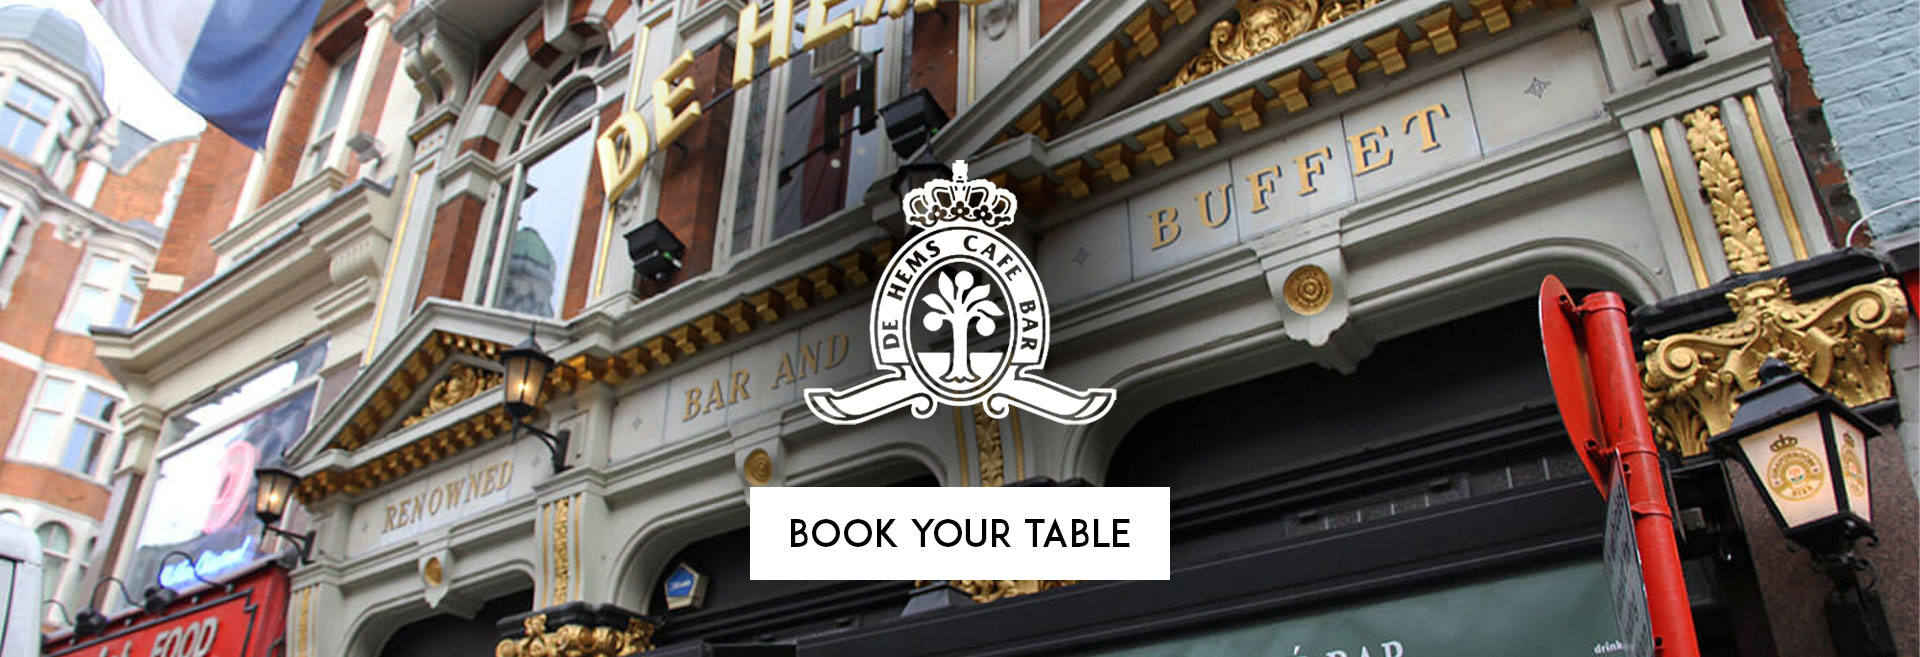 Book Your Table De Hems Dutch Cafe Bar